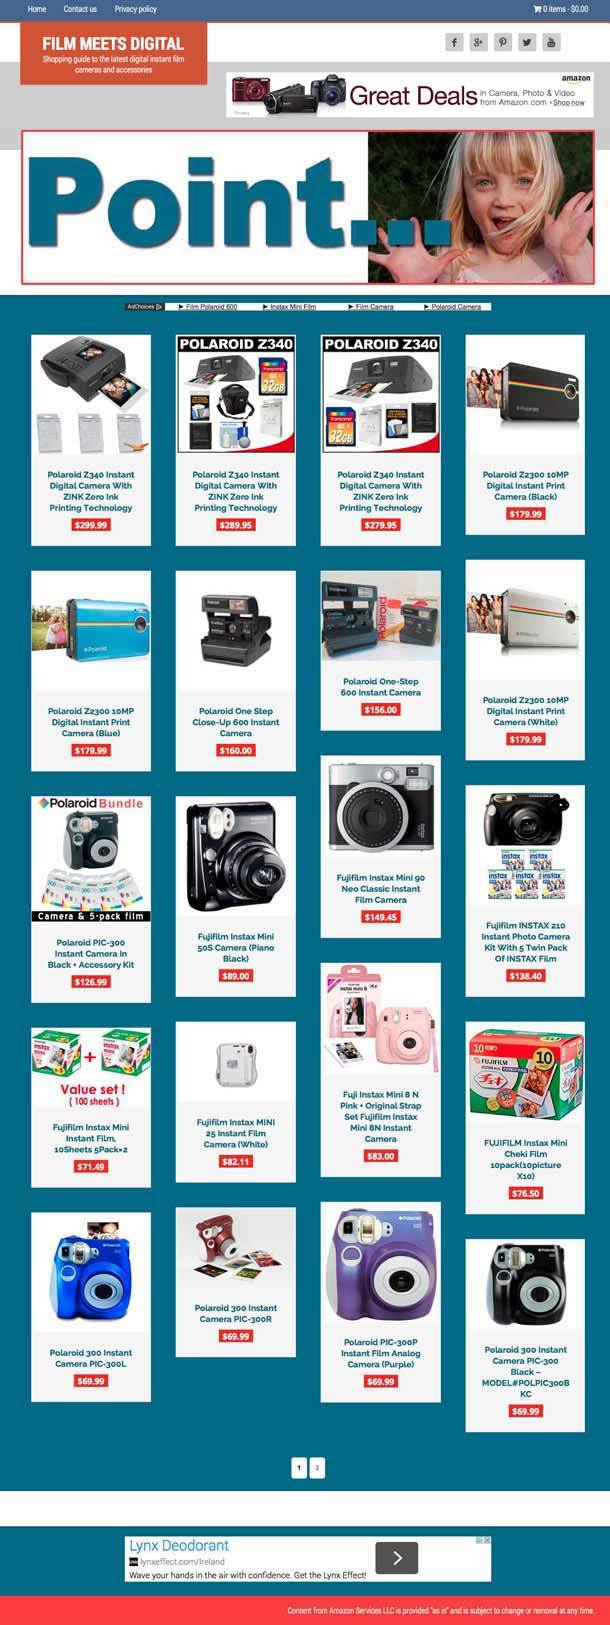 Shopping guide to the latest digital film cameras